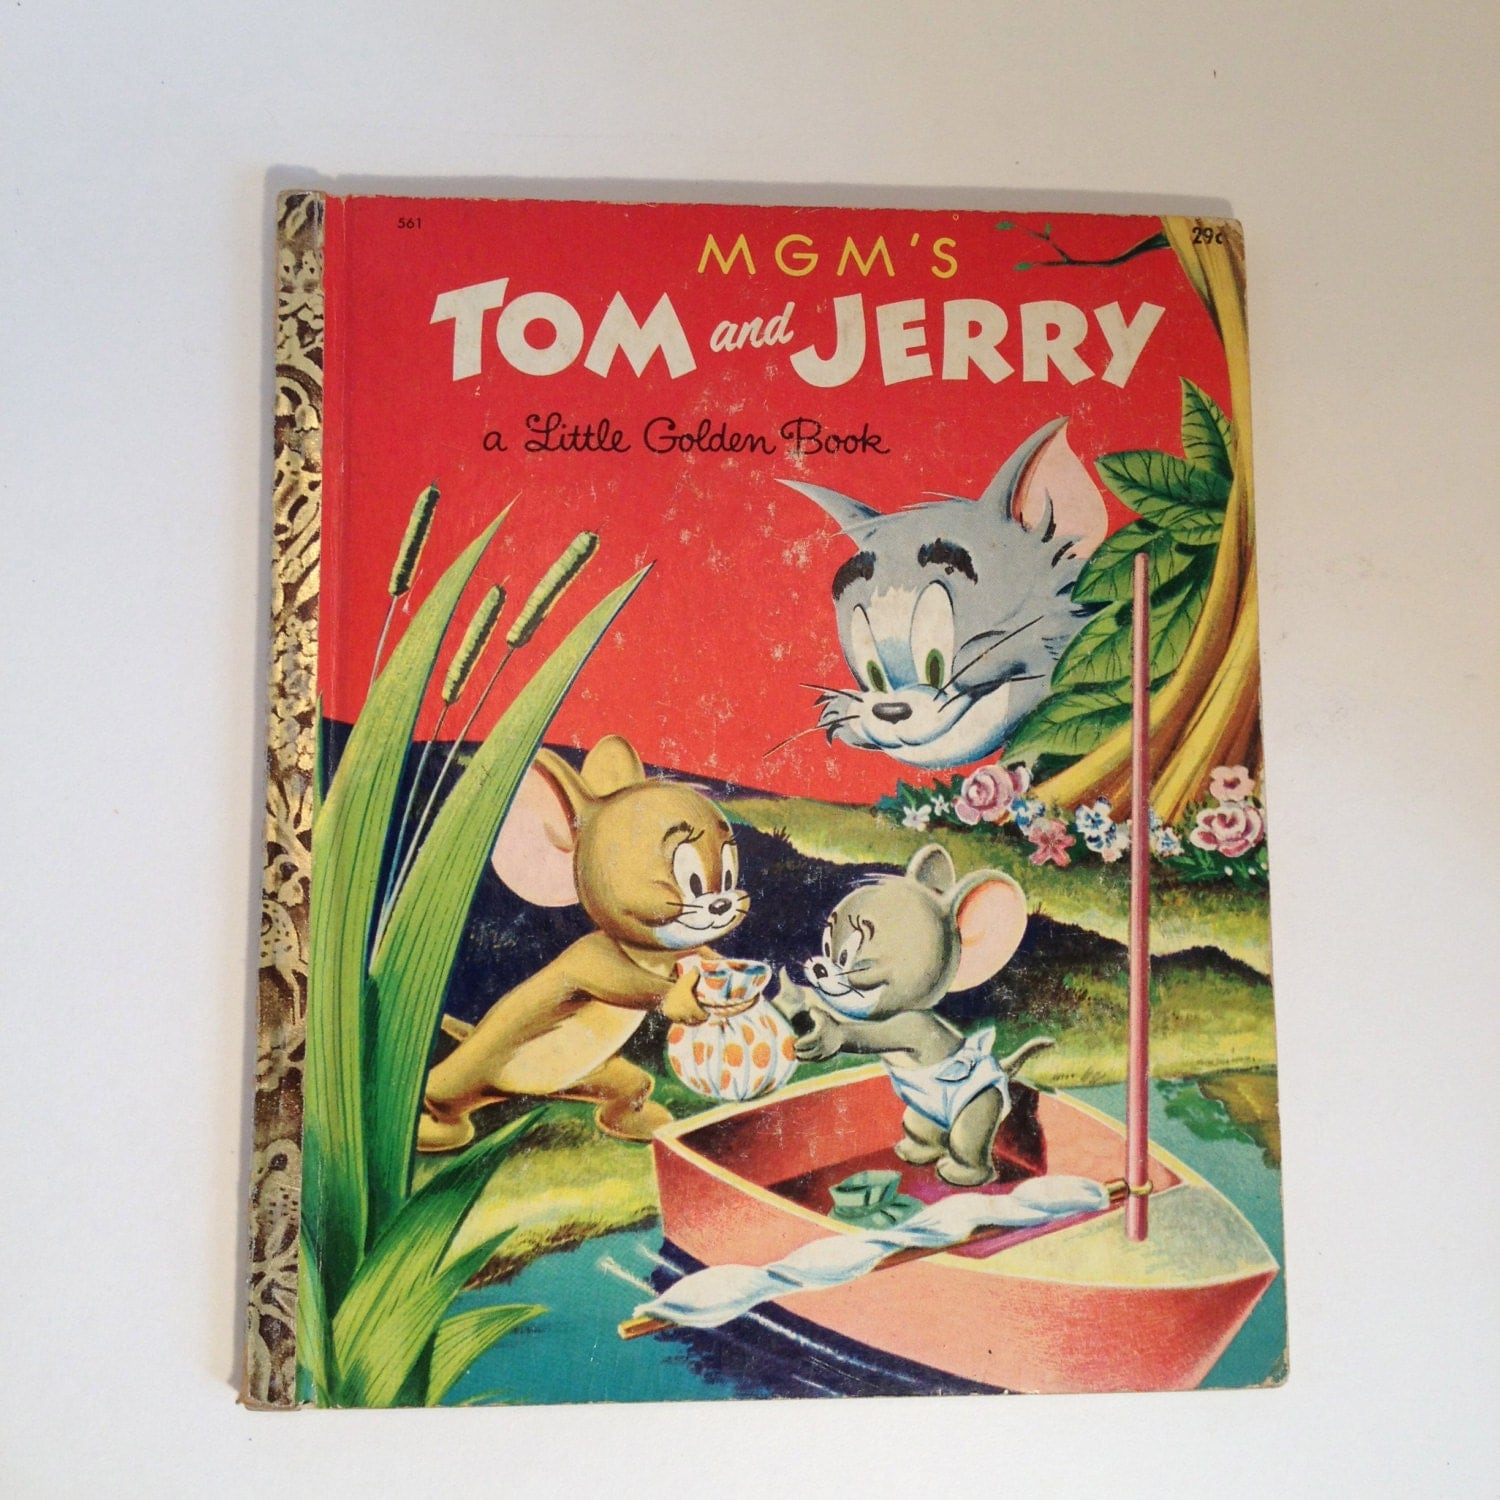 Tom And Jerry Christmas Tree: MGM's Tom And Jerry A Little Golden Book 561 29 By